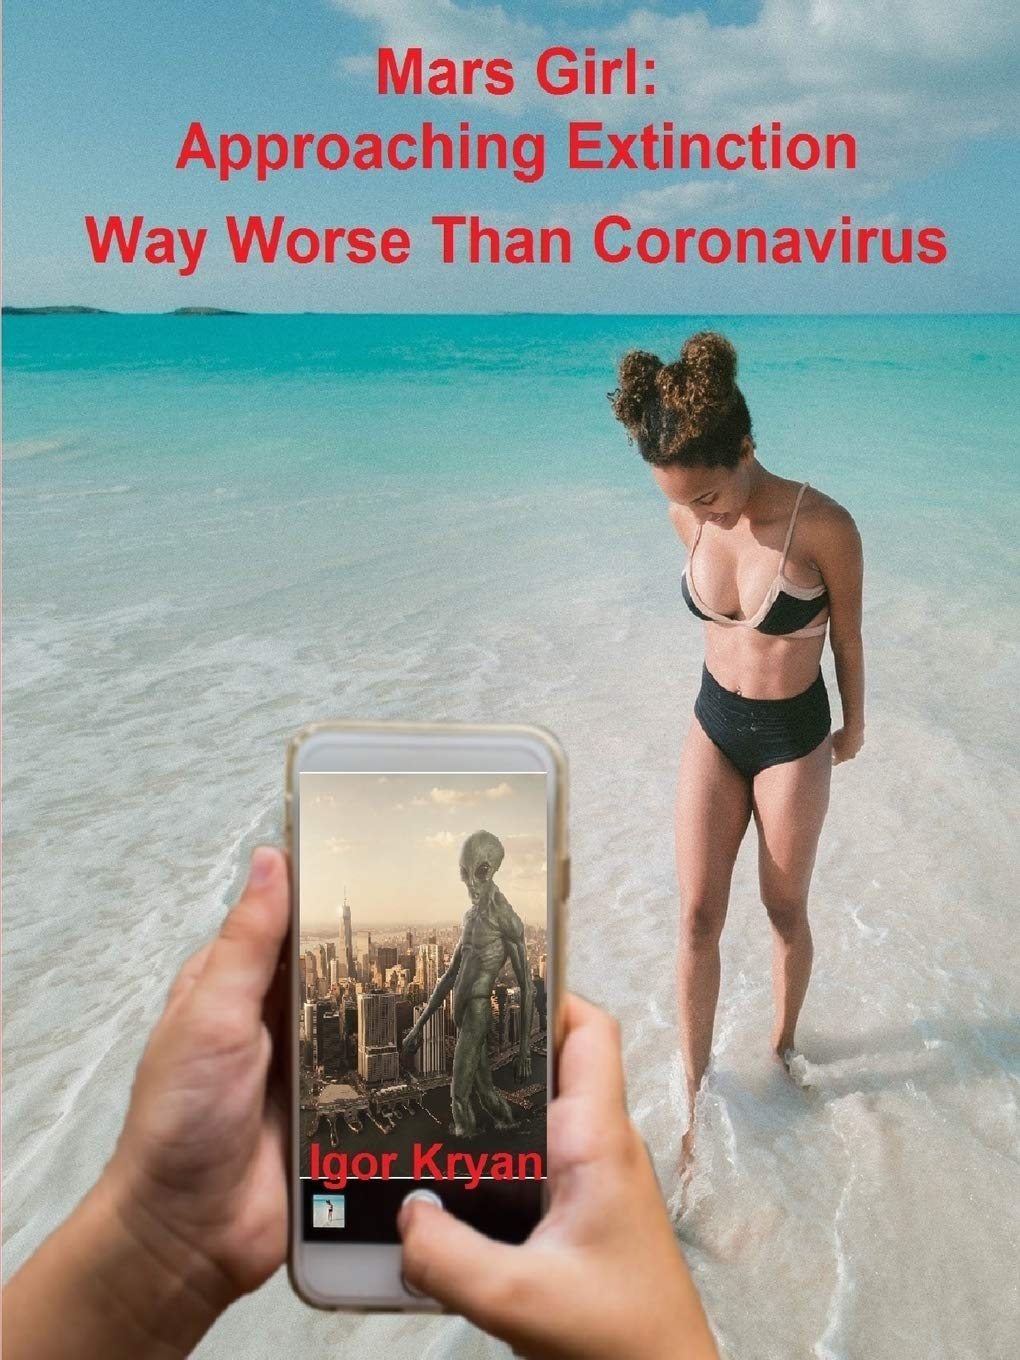 Mars Girl: Approaching Extinction Way Worse Than Coronavirus, by Igor Kryan - Survival (and Other) Books About the COVID-19 Coronavirus - Survival Books - Survival, Sustainable Living